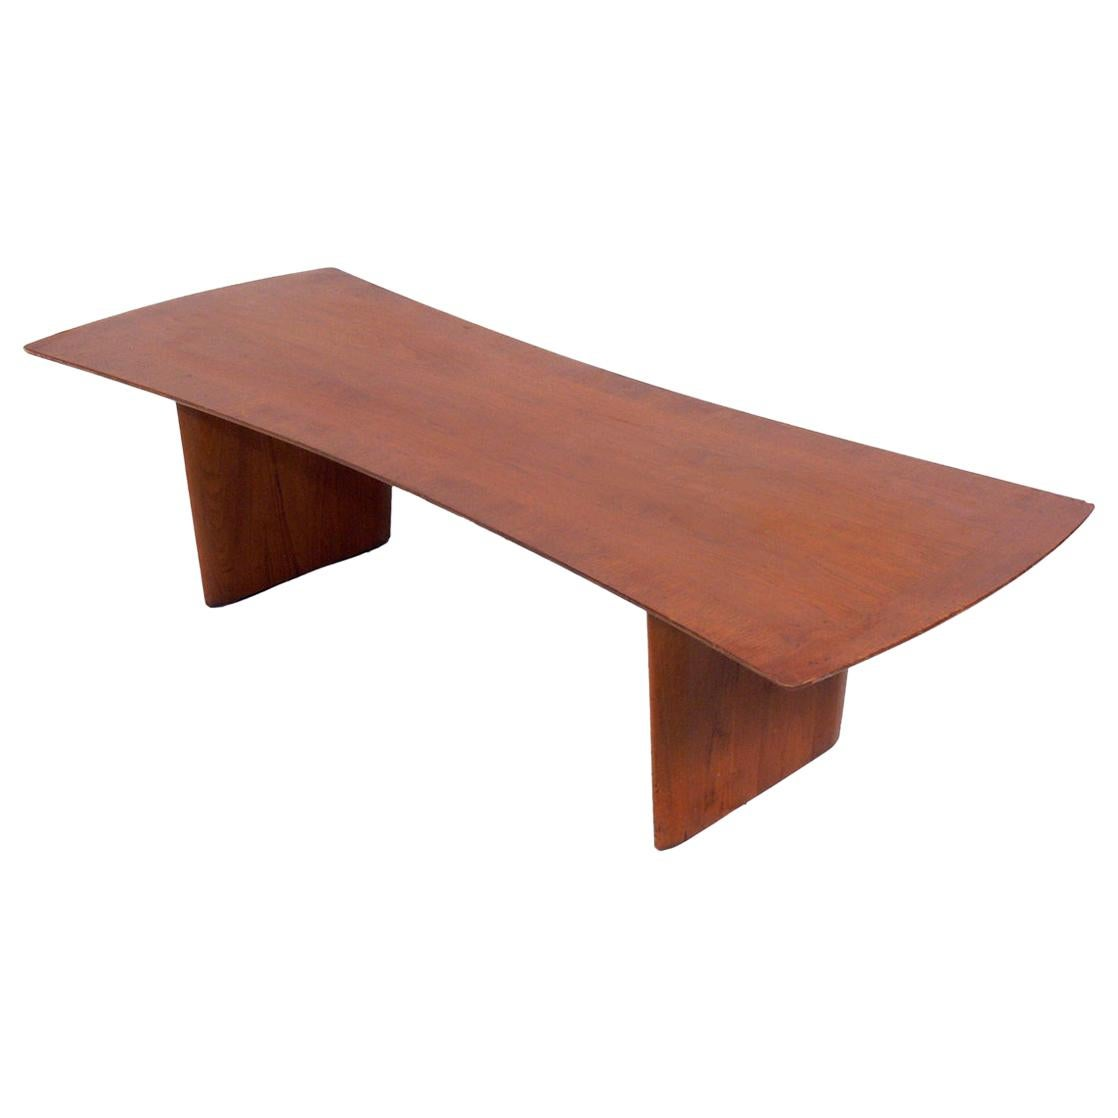 Curvaceous Coffee Table by T.H. Robsjohn Gibbings